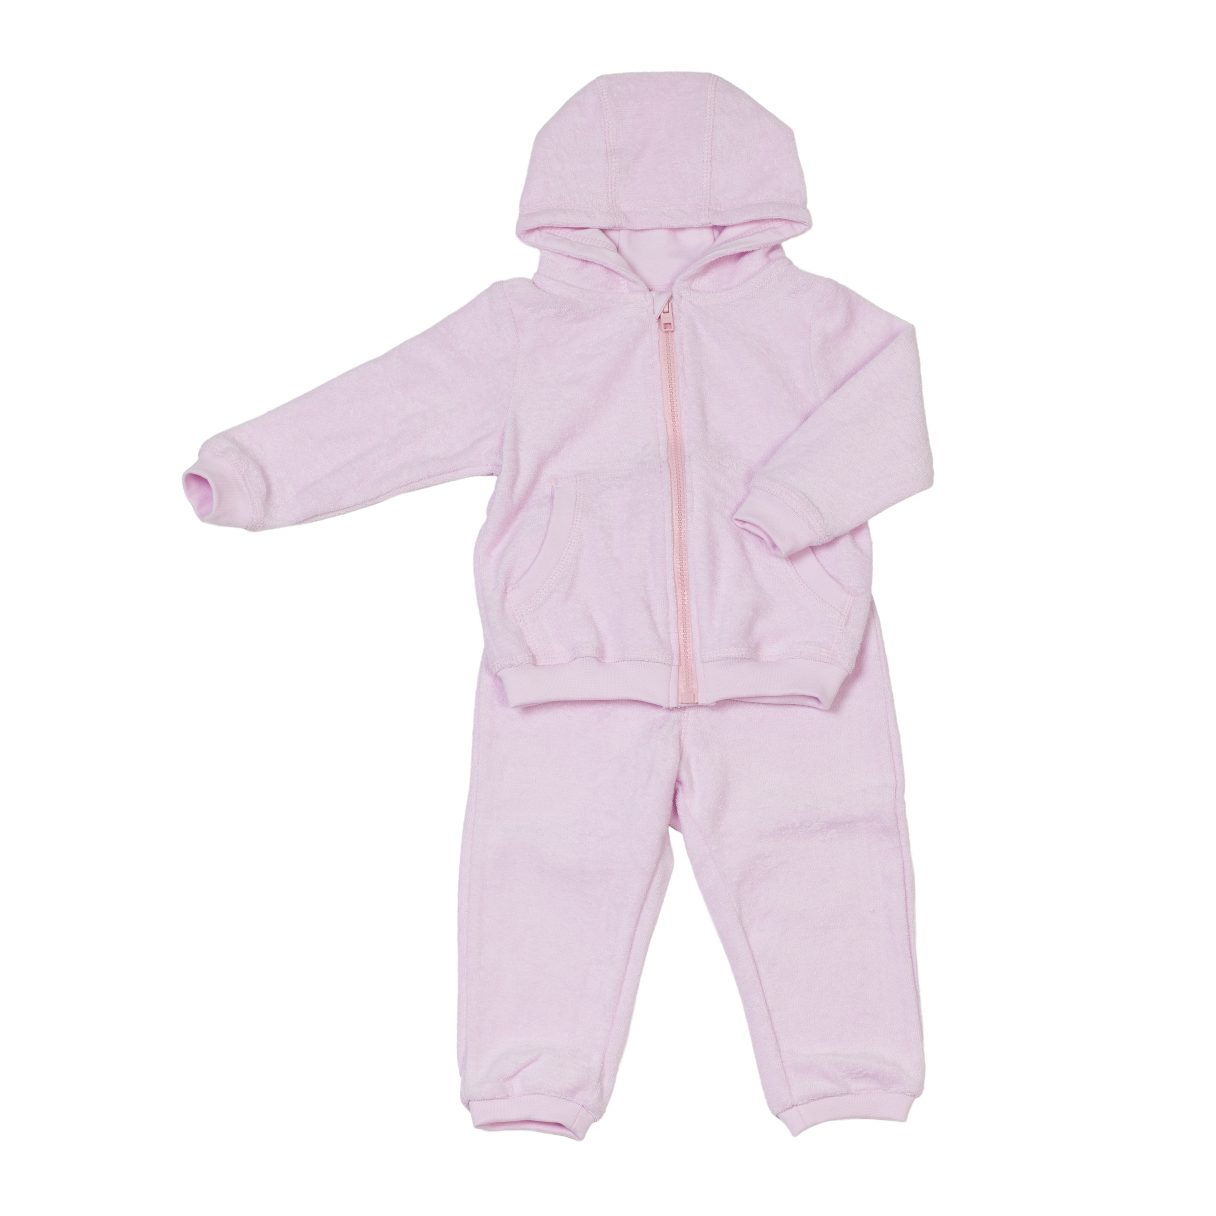 Baby Sweatsuit Pink